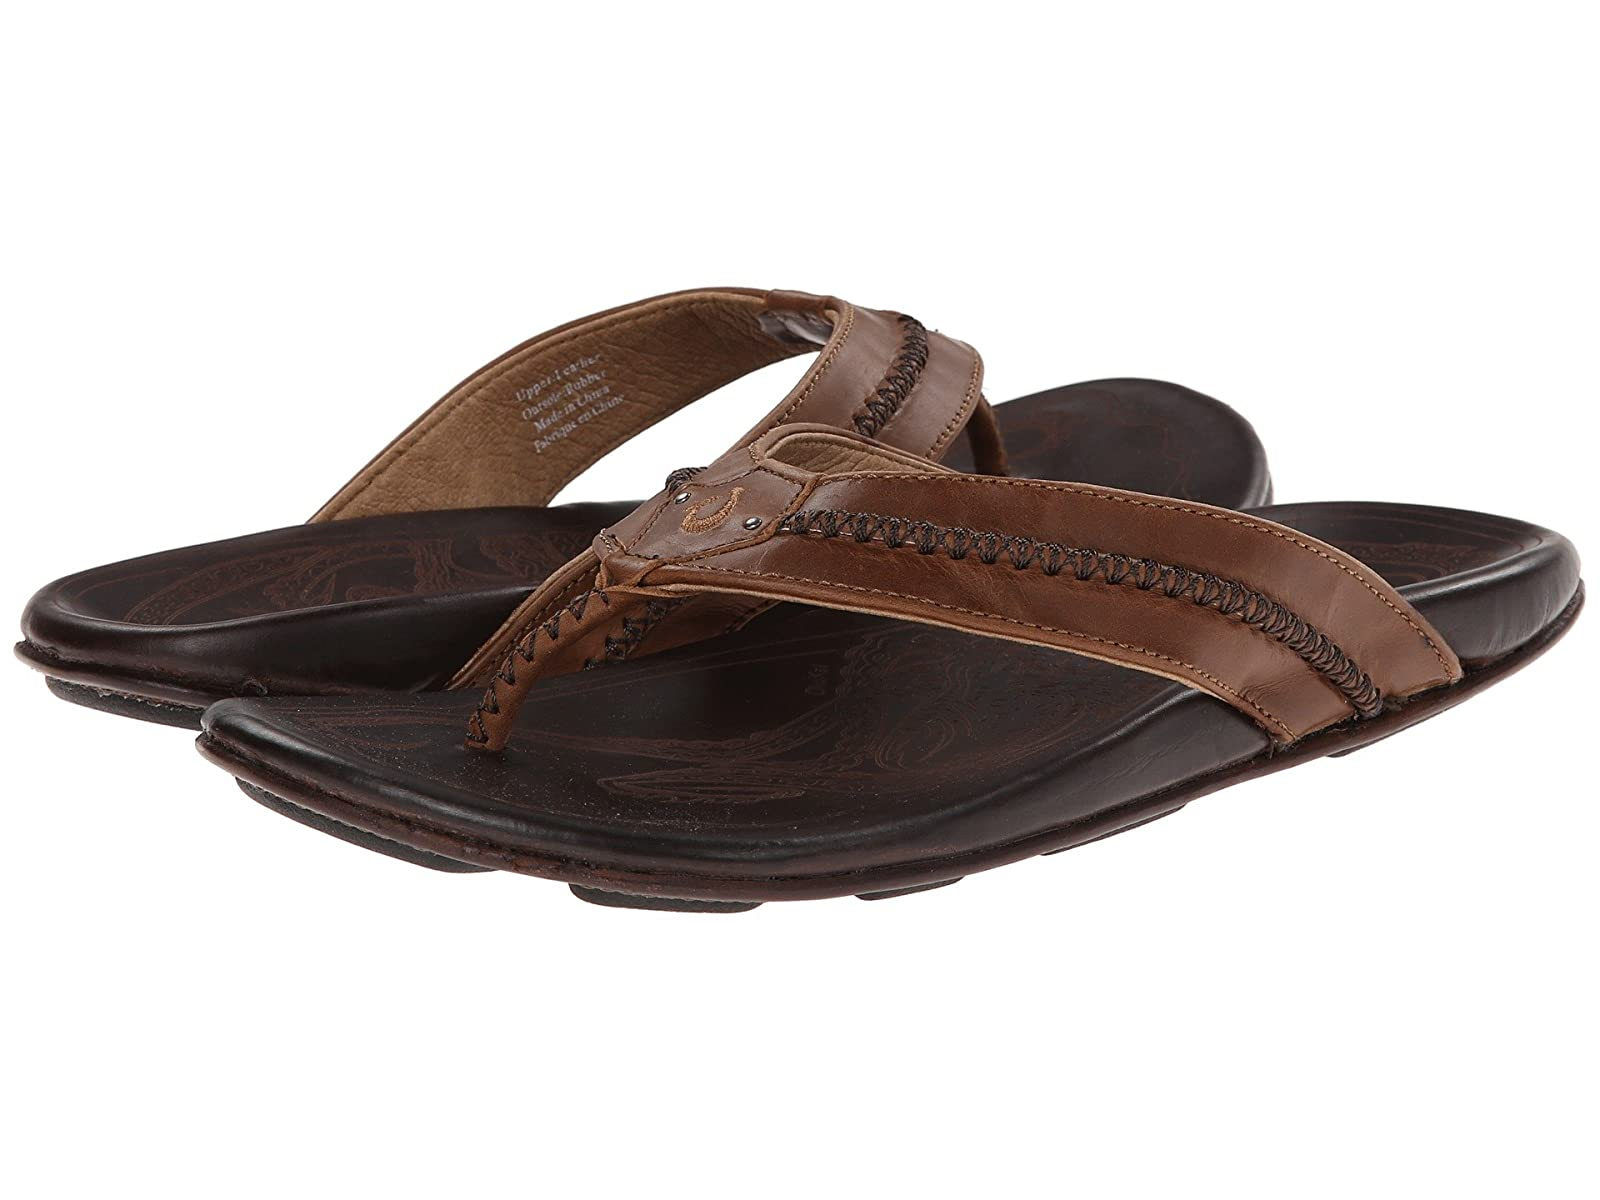 OluKai Mea OlaAtmospheric grades have affordable shoes